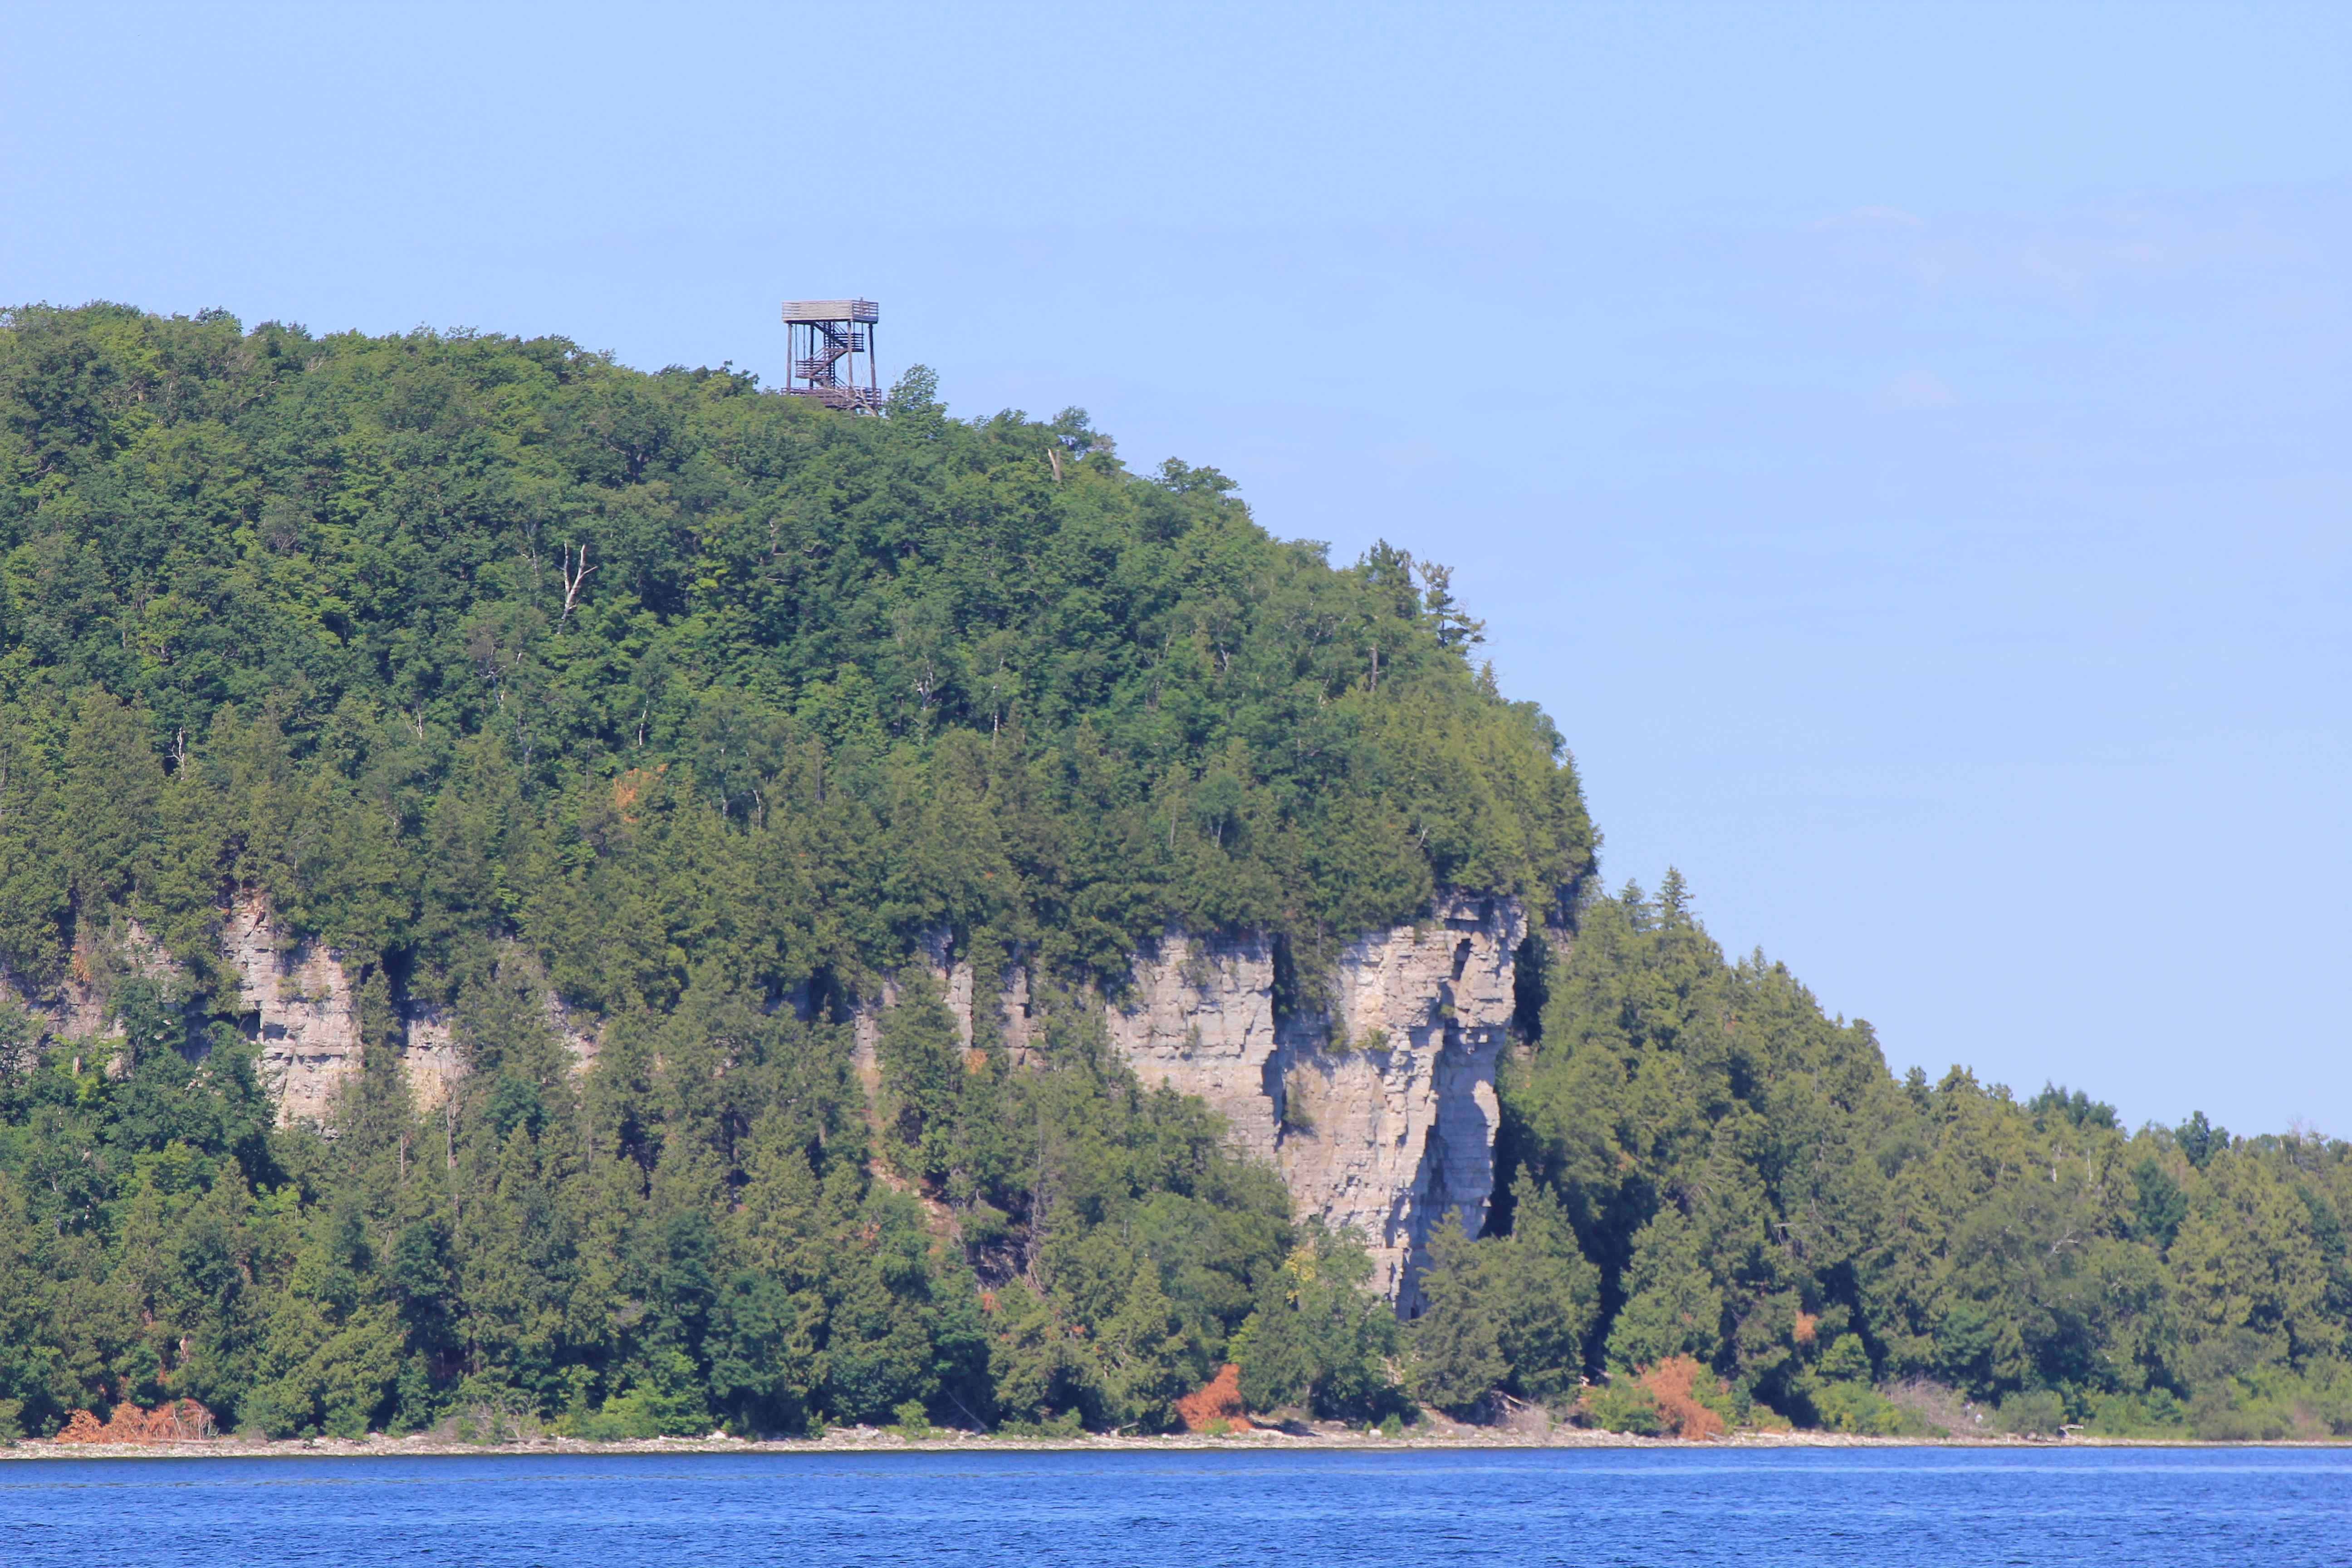 From Anderson dock in Ephraim looking out across Green Bay to the Eagle Tower in Door & Door County: The Jewel in our own Backyard - Travelers Roundtable